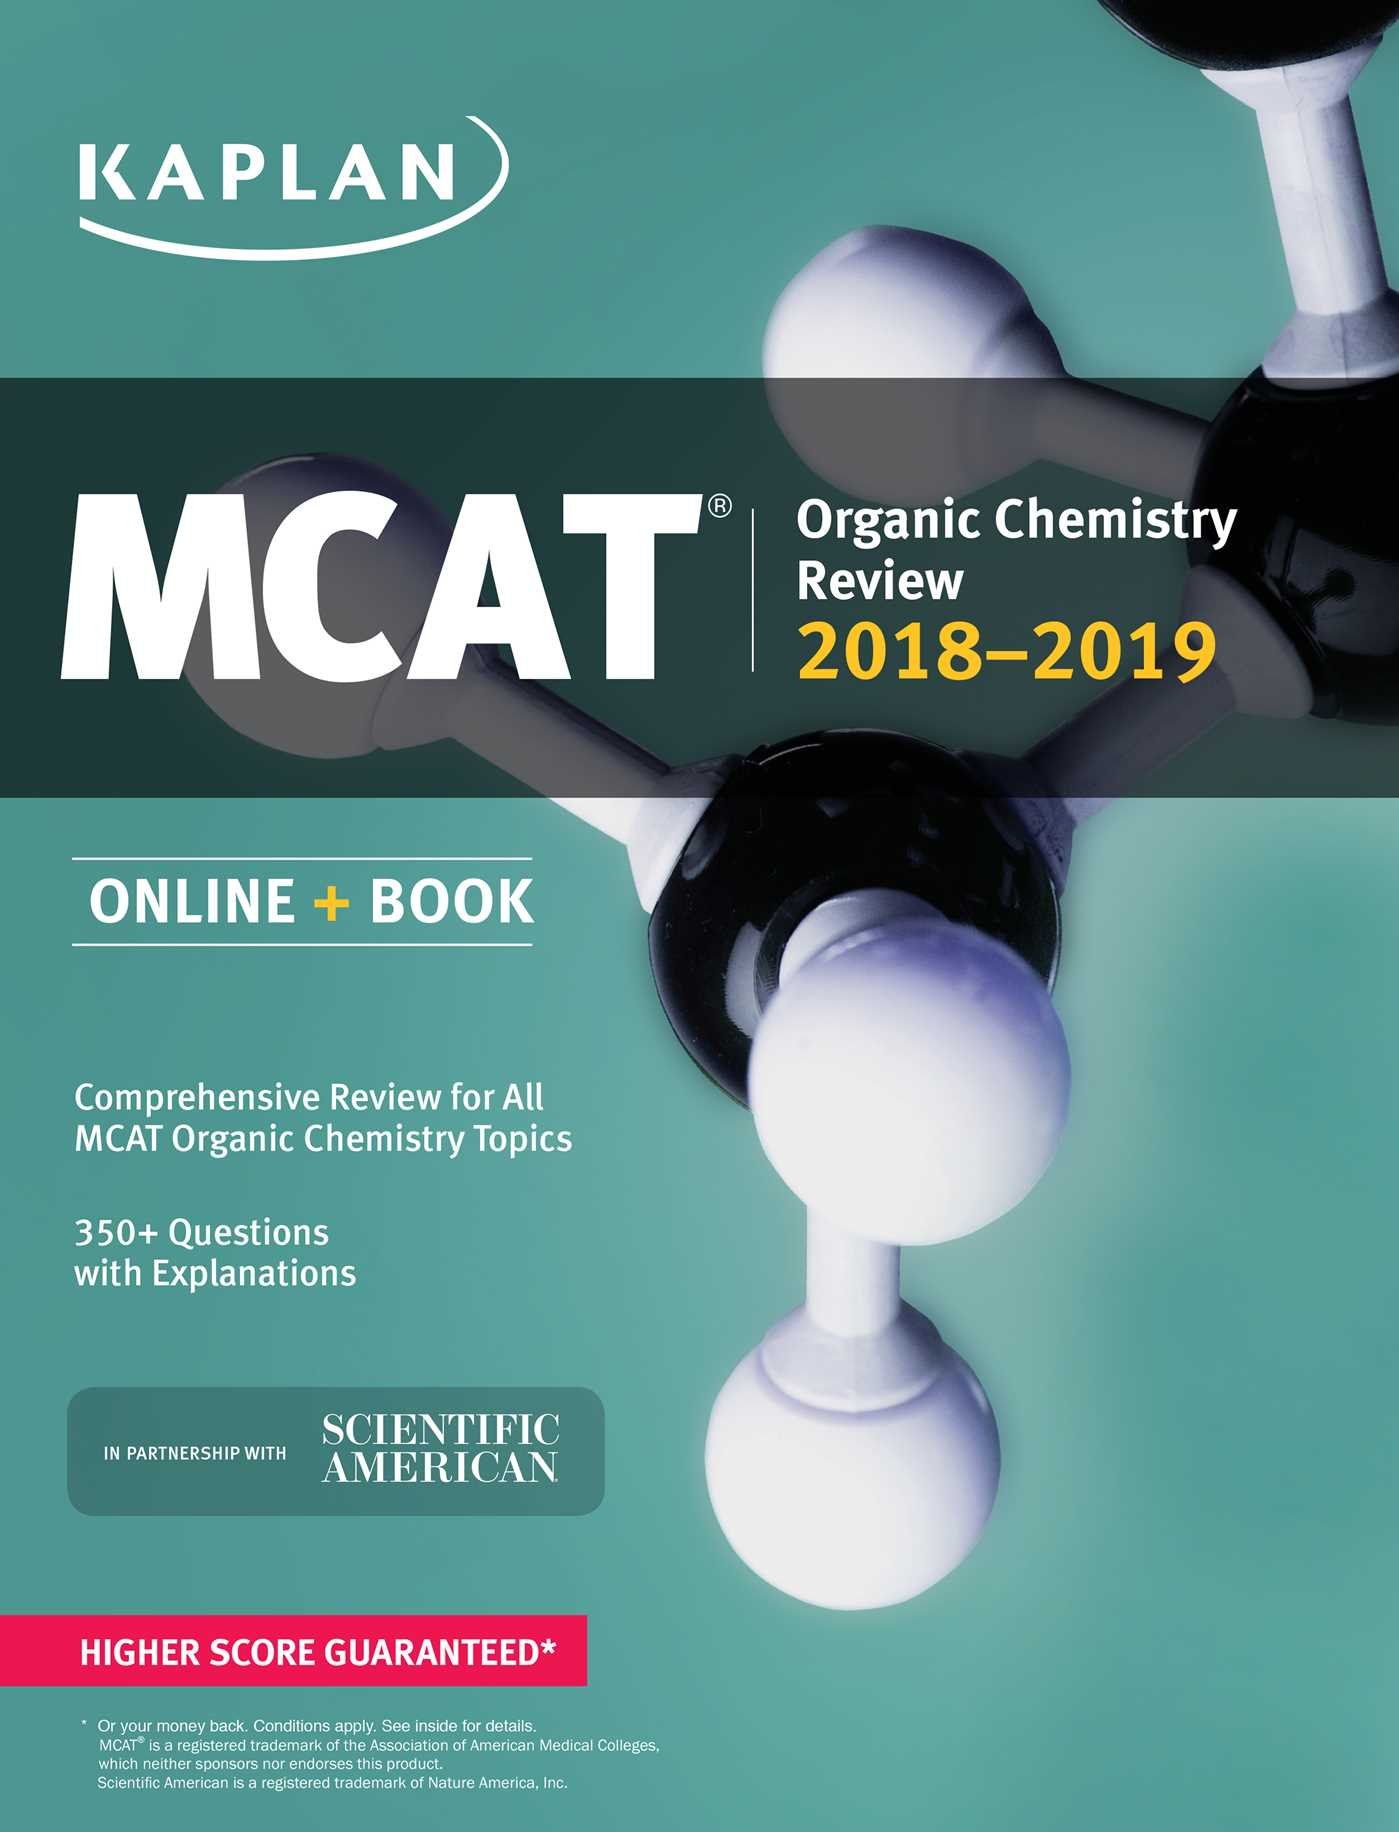 Buy MCAT Organic Chemistry Review 2018-2019: Online + Book (Kaplan Test Prep)  Book Online at Low Prices in India | MCAT Organic Chemistry Review 2018-2019:  ...